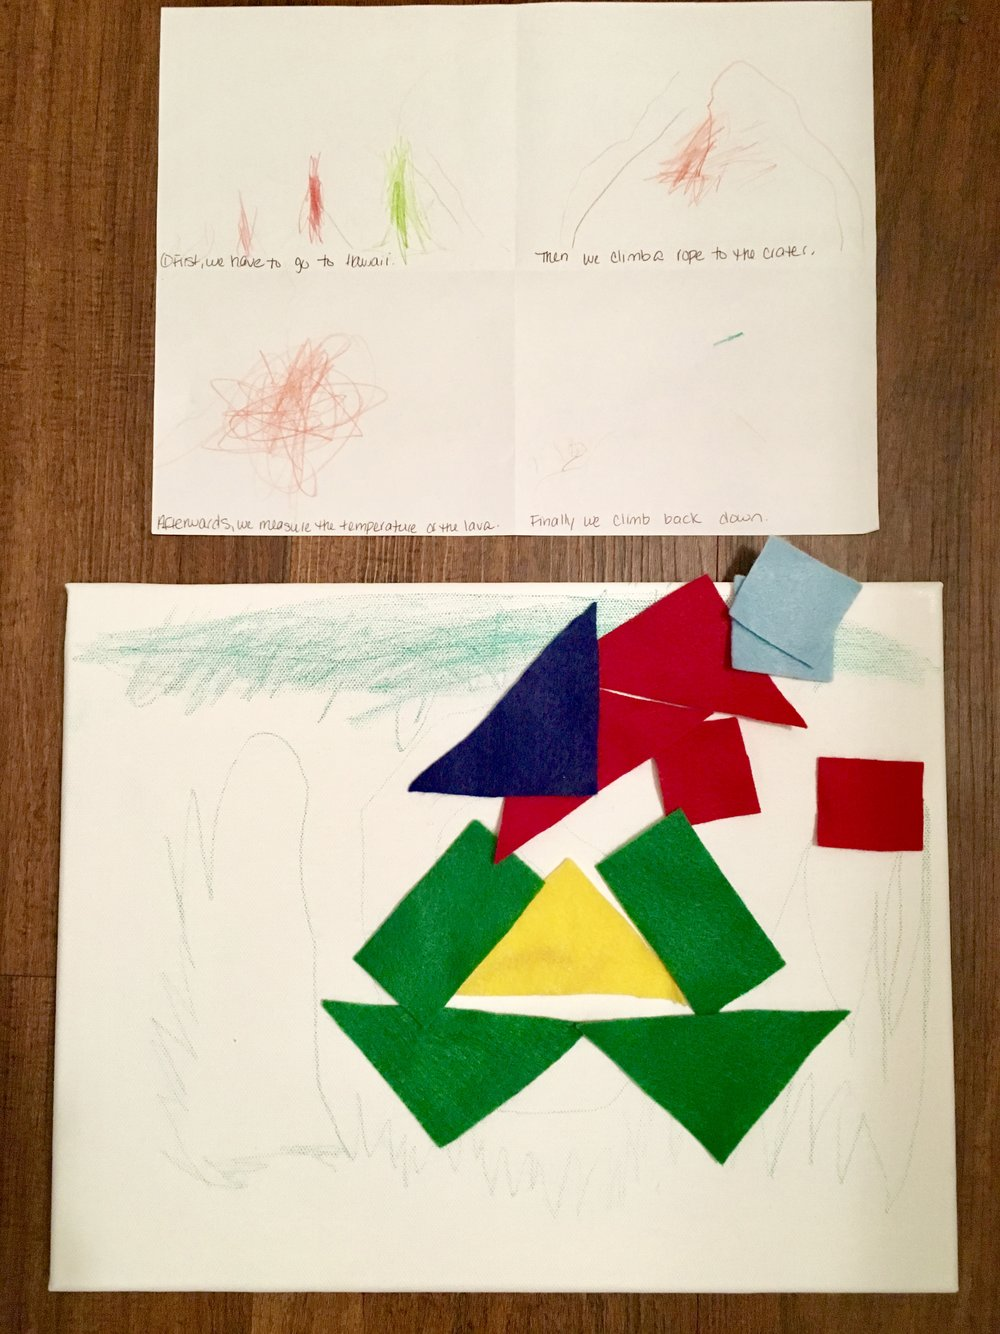 Becoming a Volcanologist Storyboard and Quilt